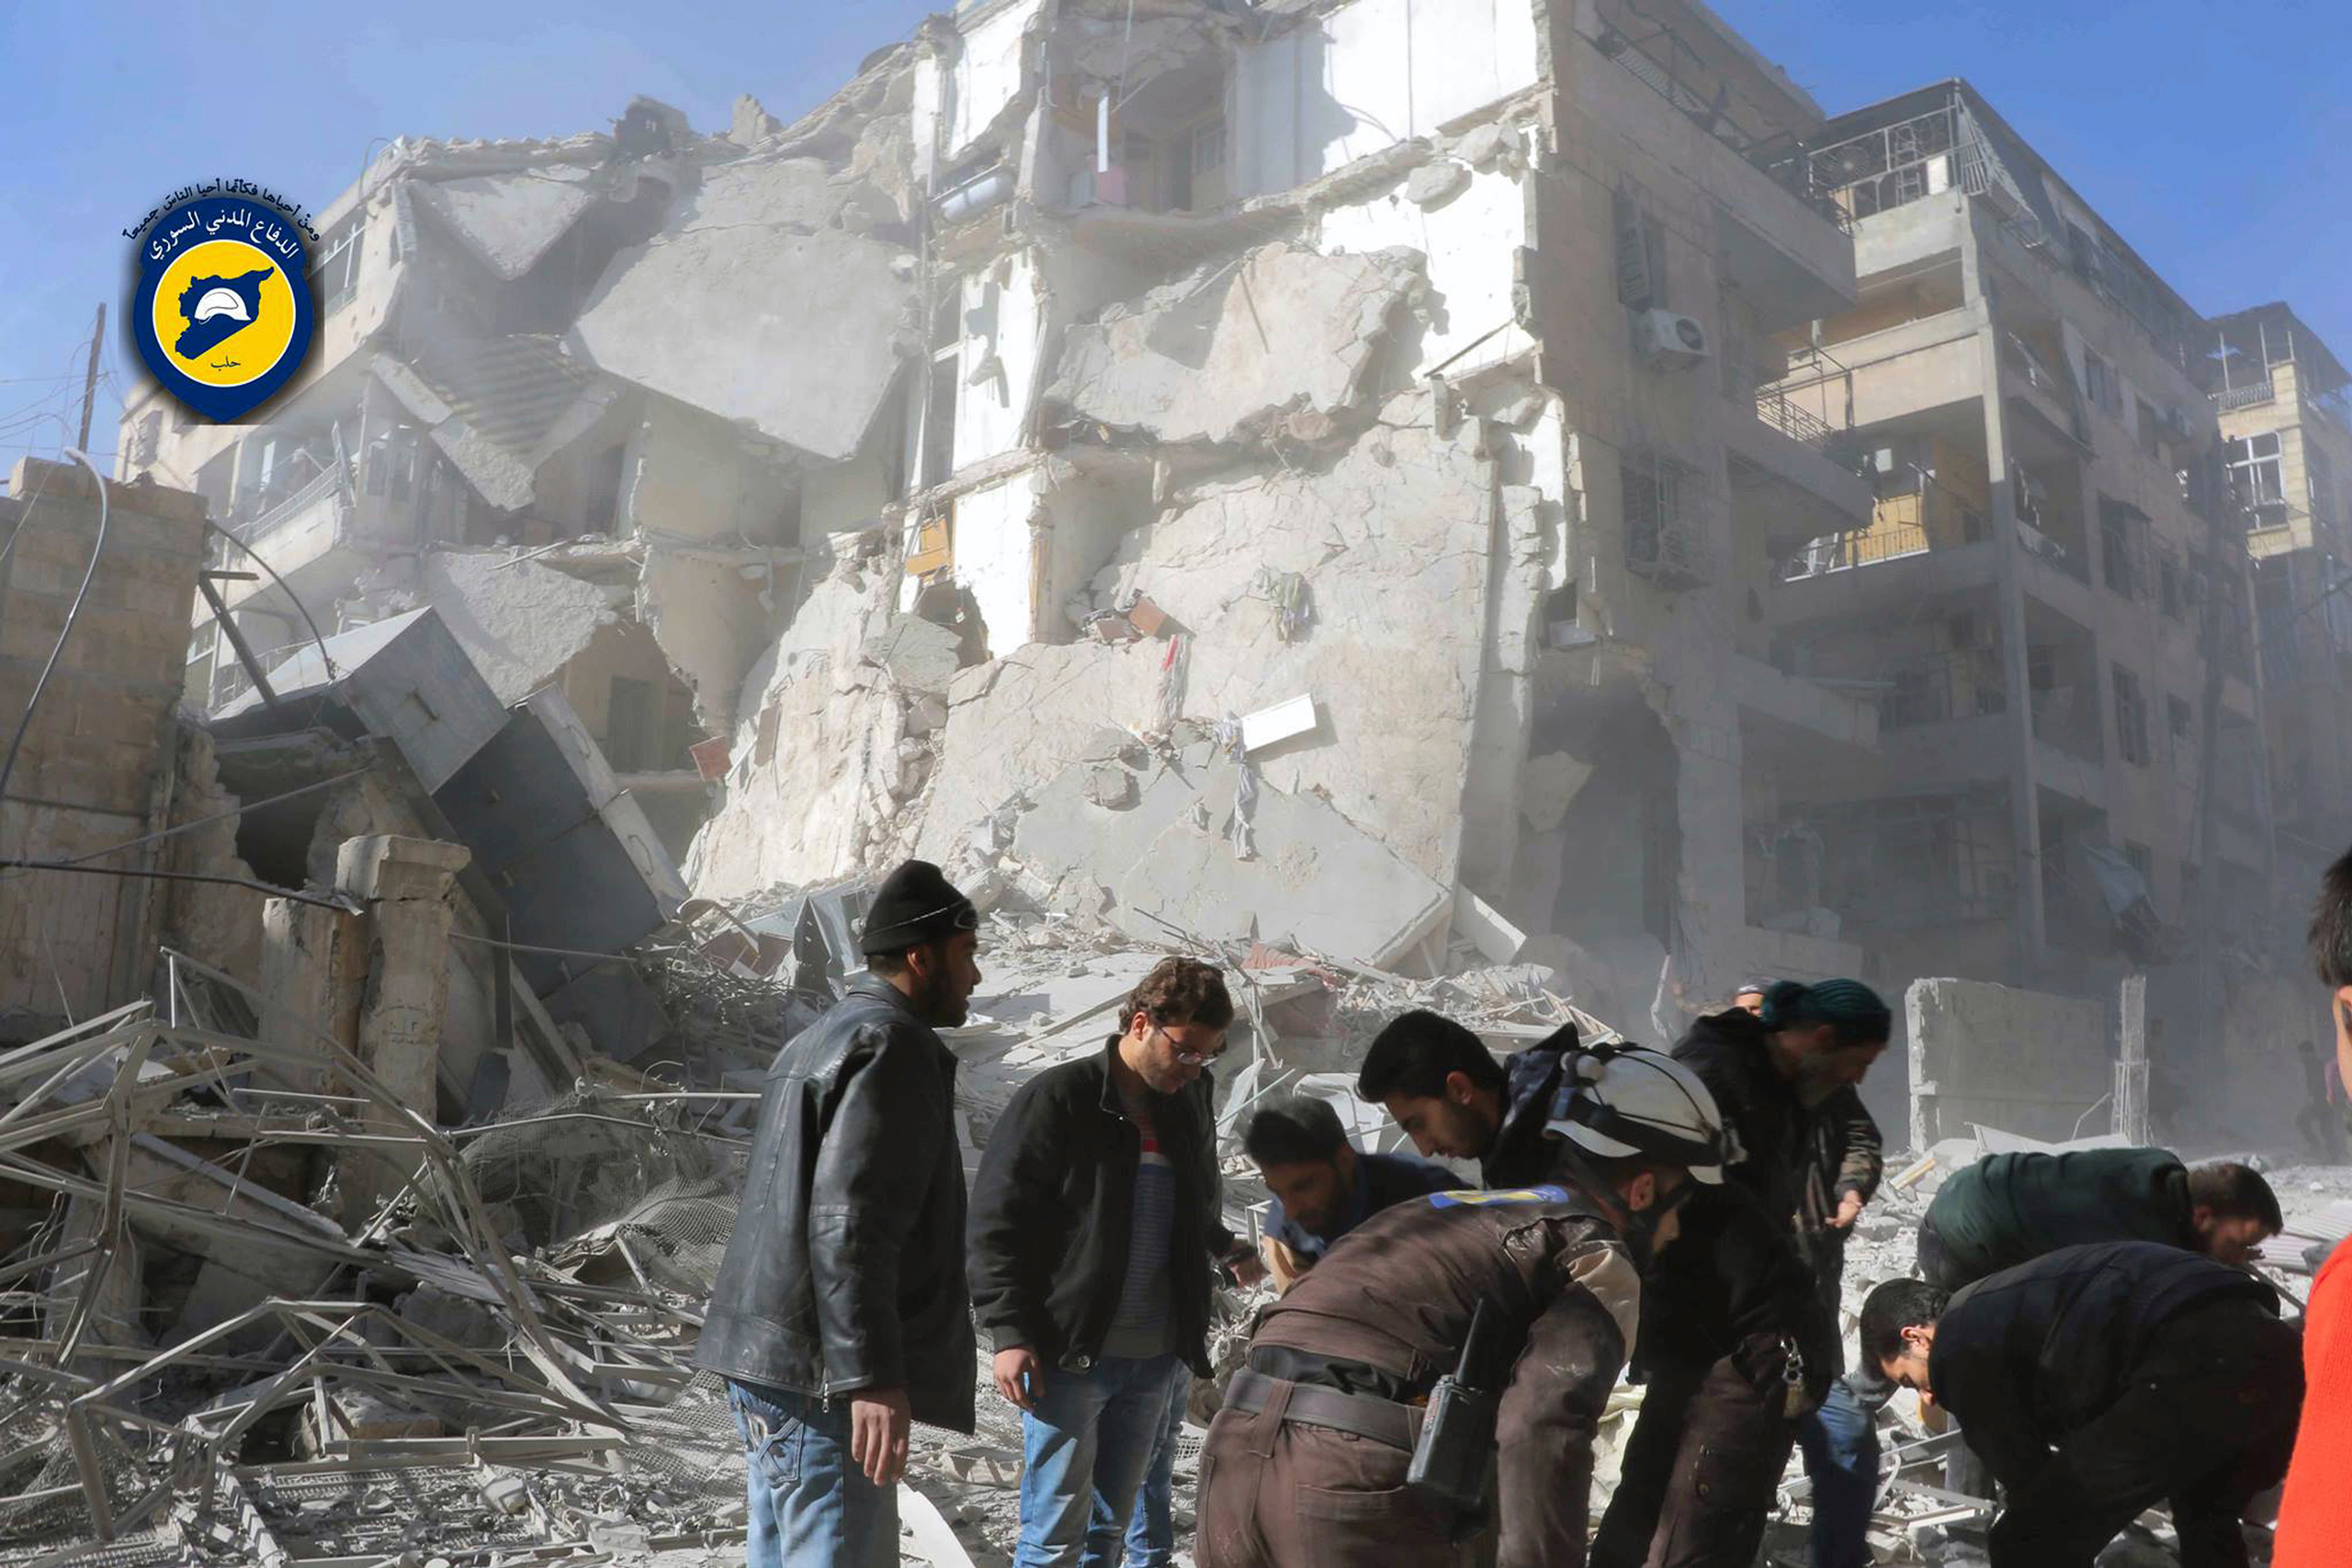 Civil Defense workers and Syrian citizens inspect damage buildings after airstrikes hit the Seif al-Dawleh neighborhood in Aleppo, Syria, on Nov. 19, 2016.